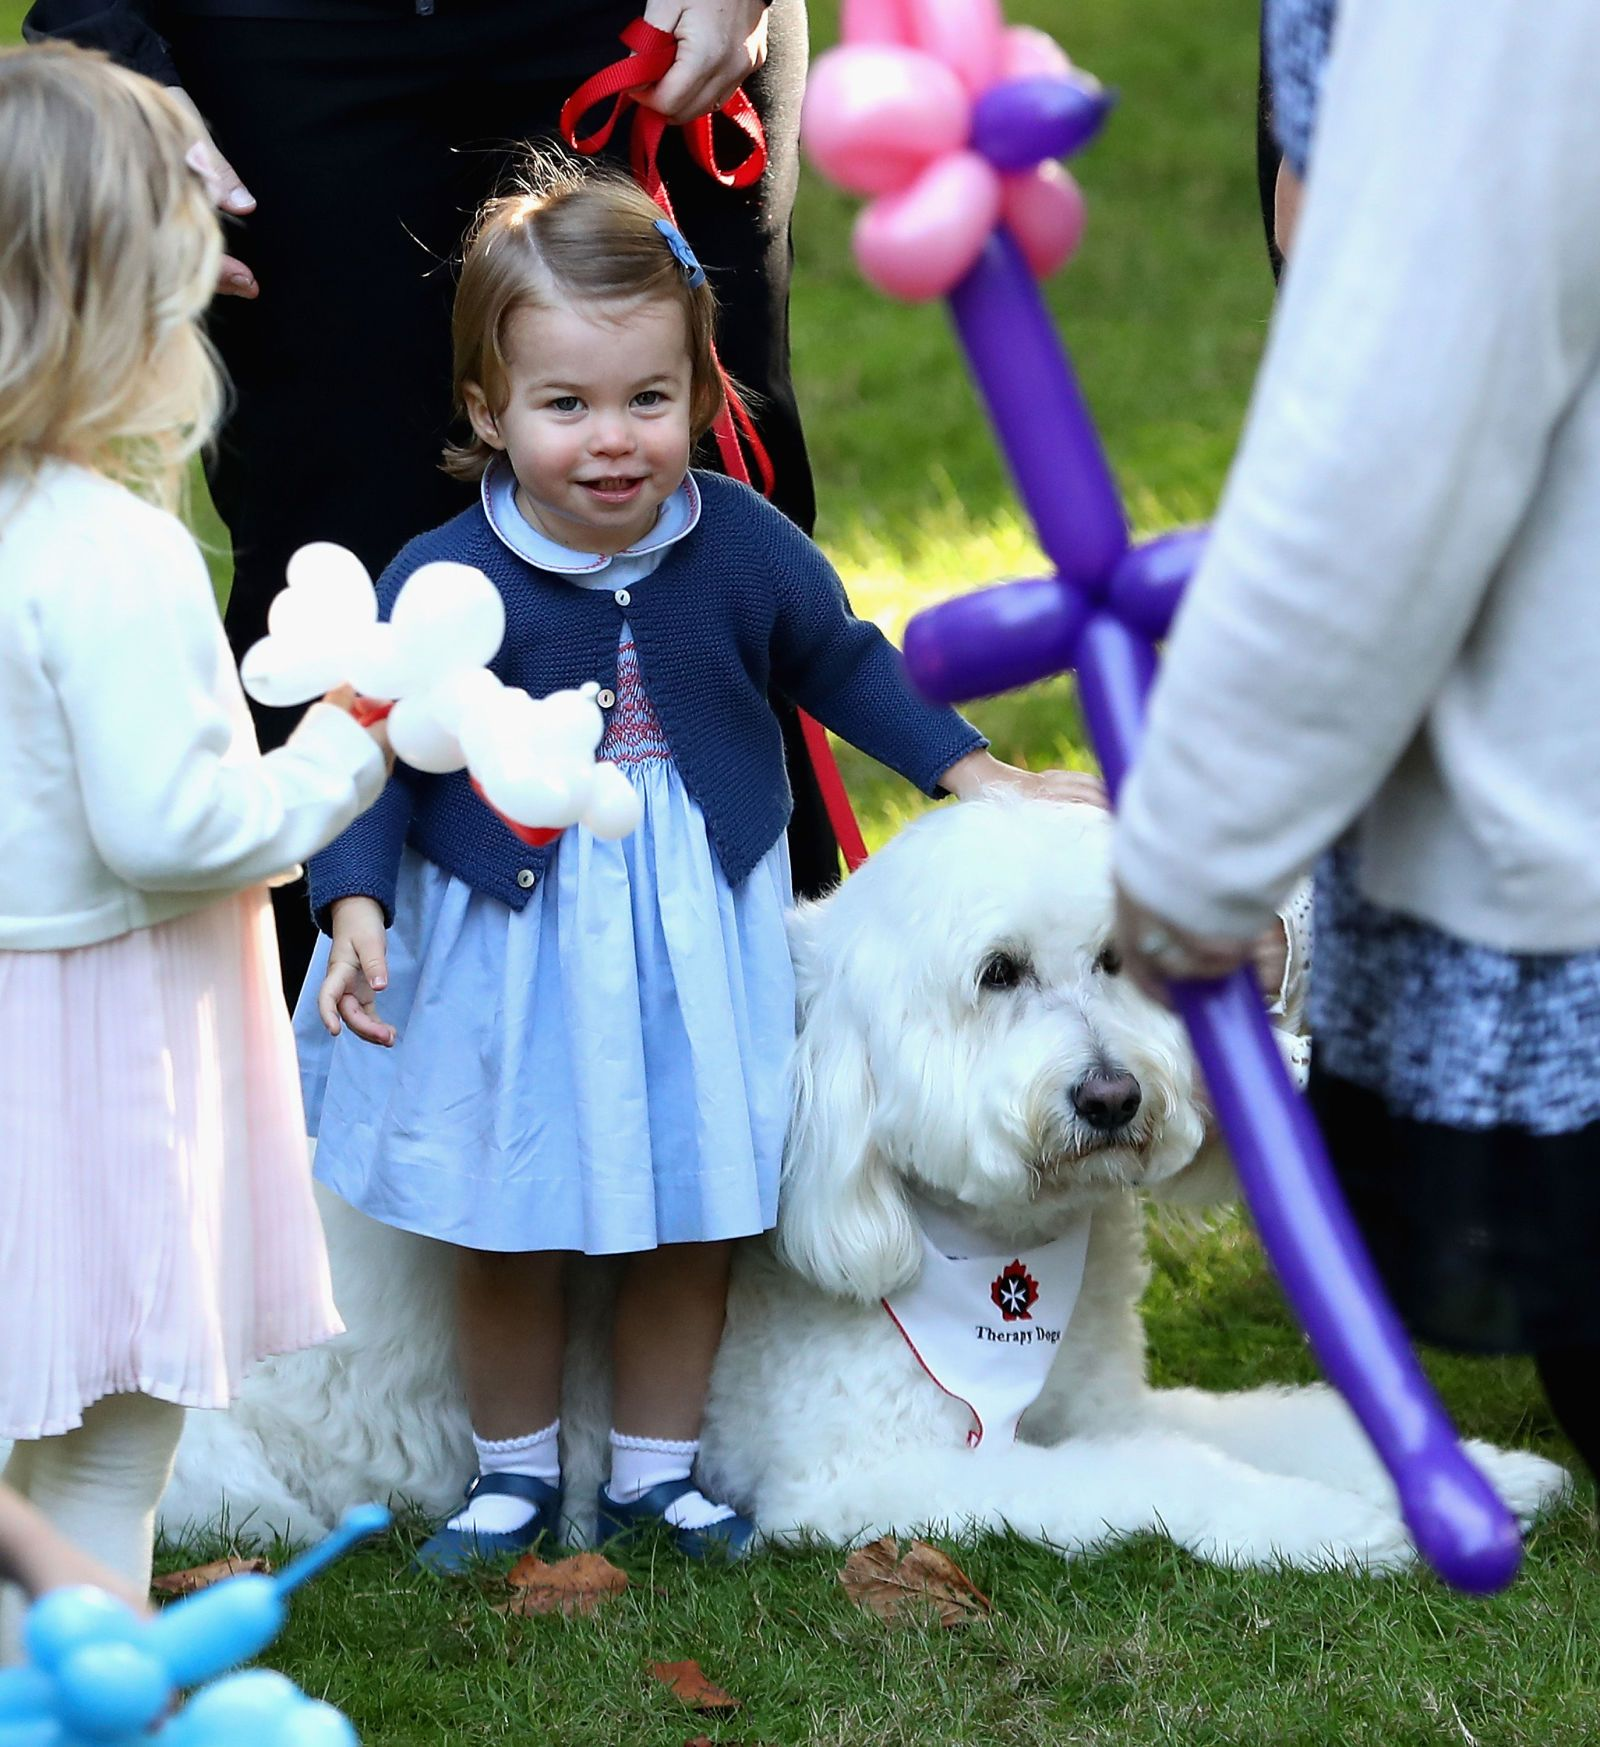 This Insanely Adorable Video of Princess Charlotte Playing With Balloons Will Make Your Day